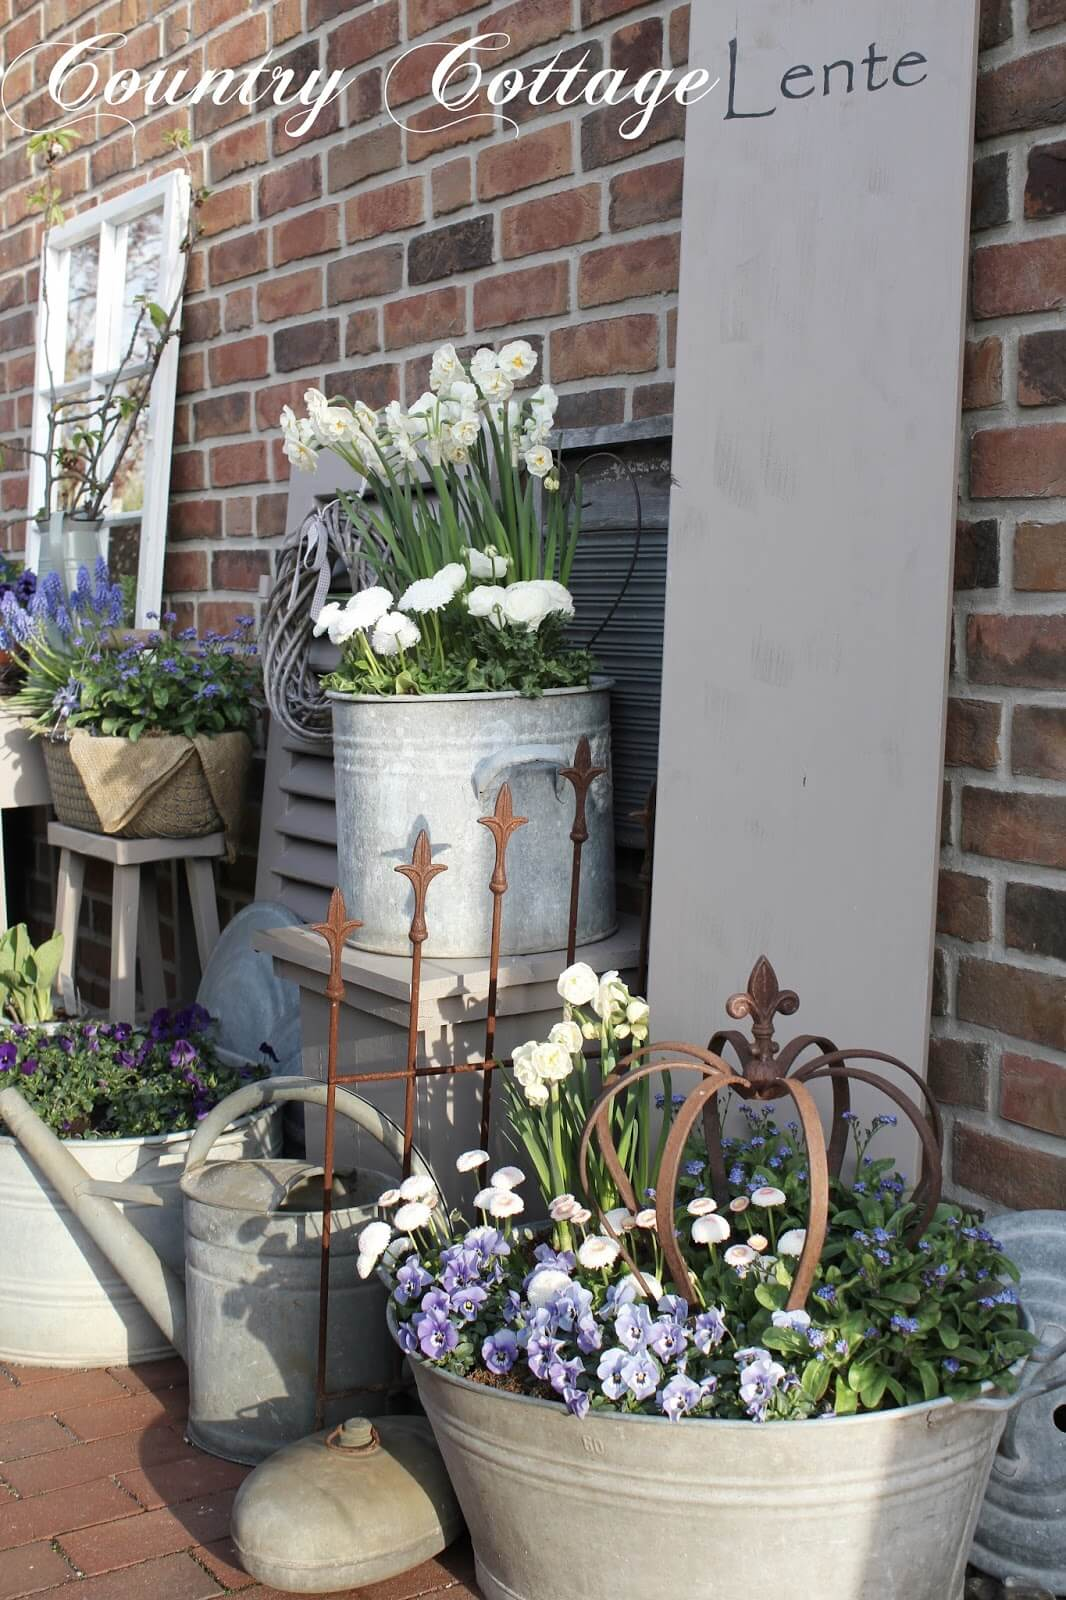 An Assortment of Metal Planters with Flowers